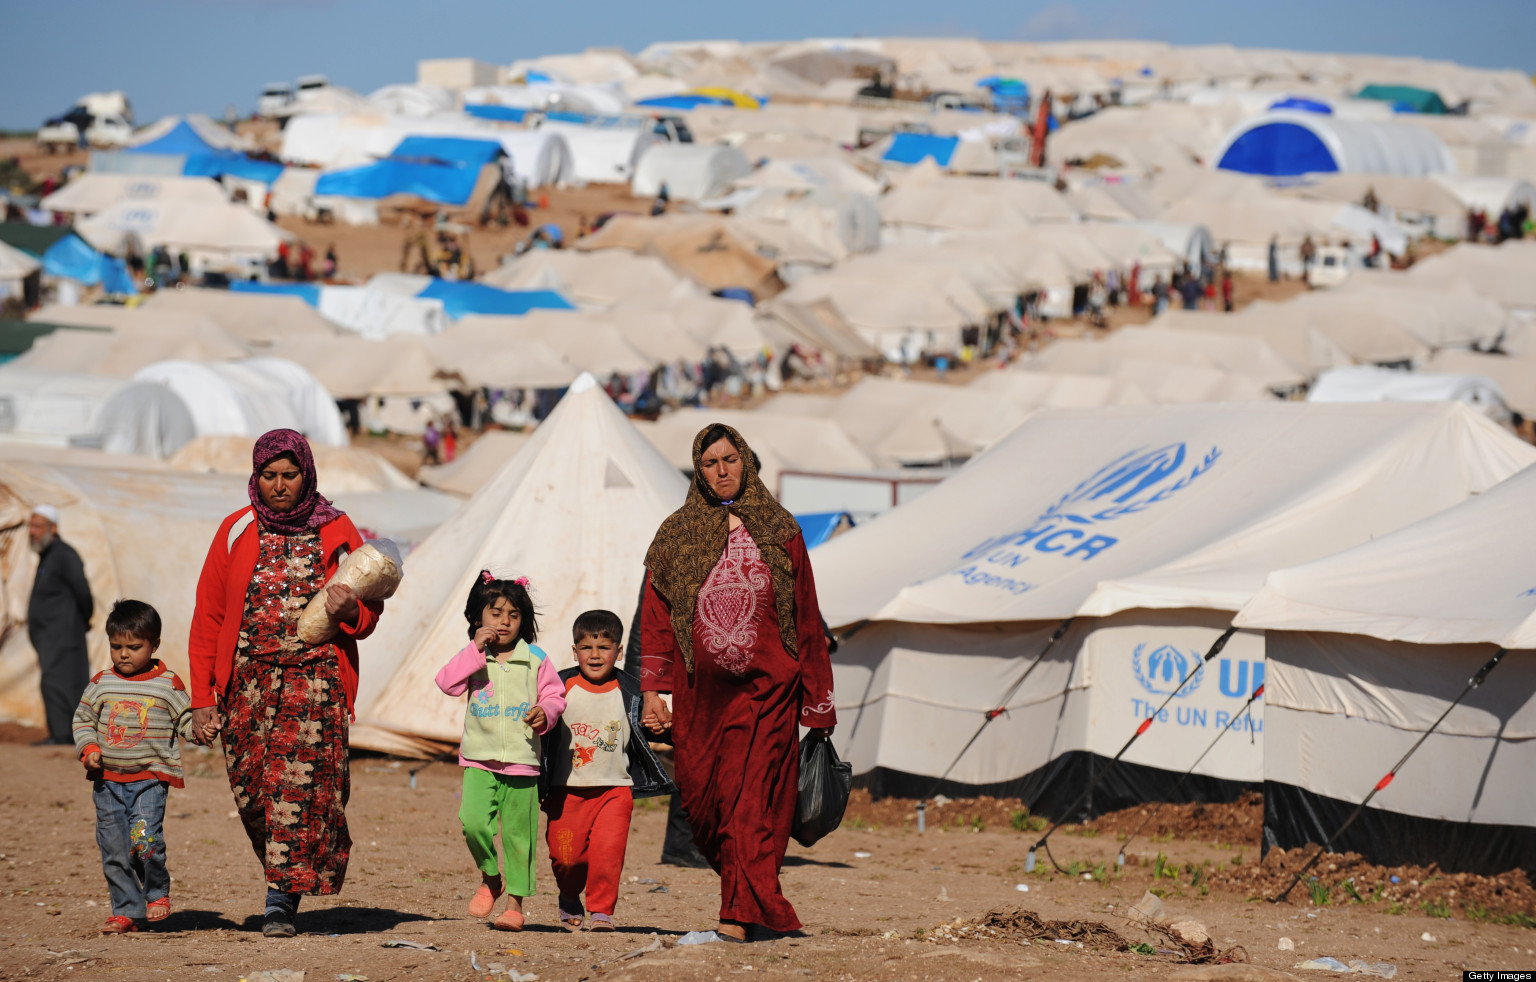 Refugee Camps in Syria set up, Turkey Reduces Entries